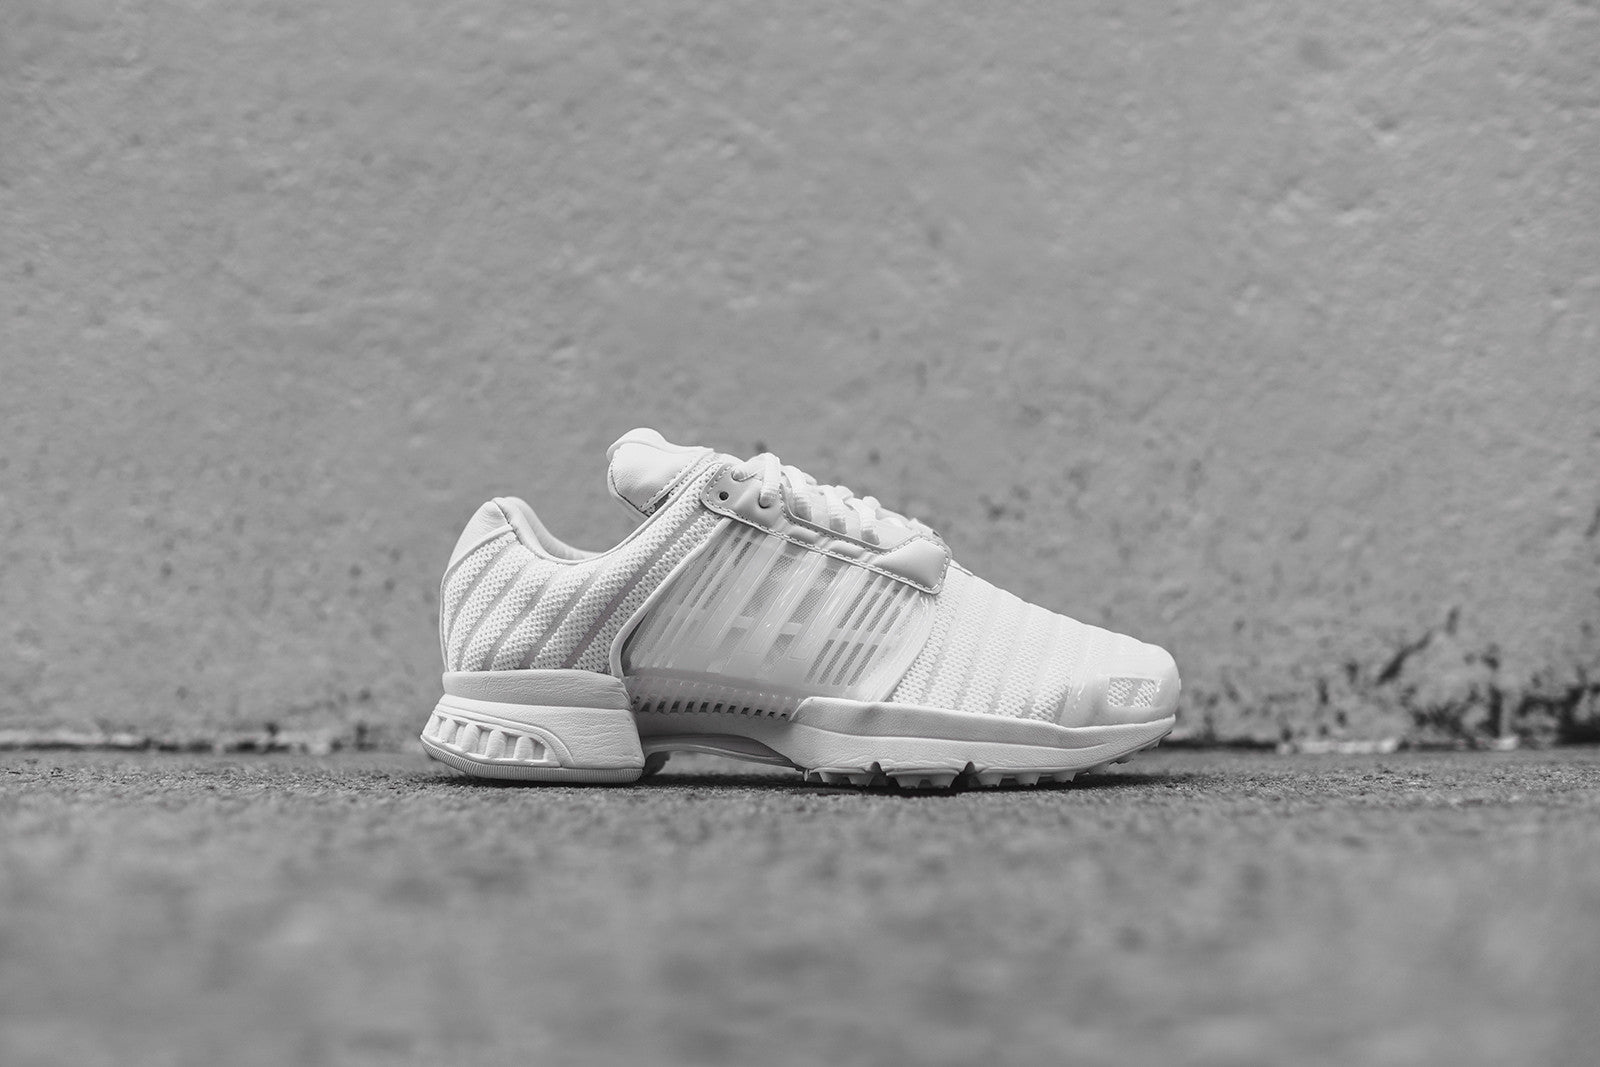 check out 543aa 3a5a7 ... italy adidas consortium x sneakerboy x wish climacool 1 pk white 8ca17  c0eca ...